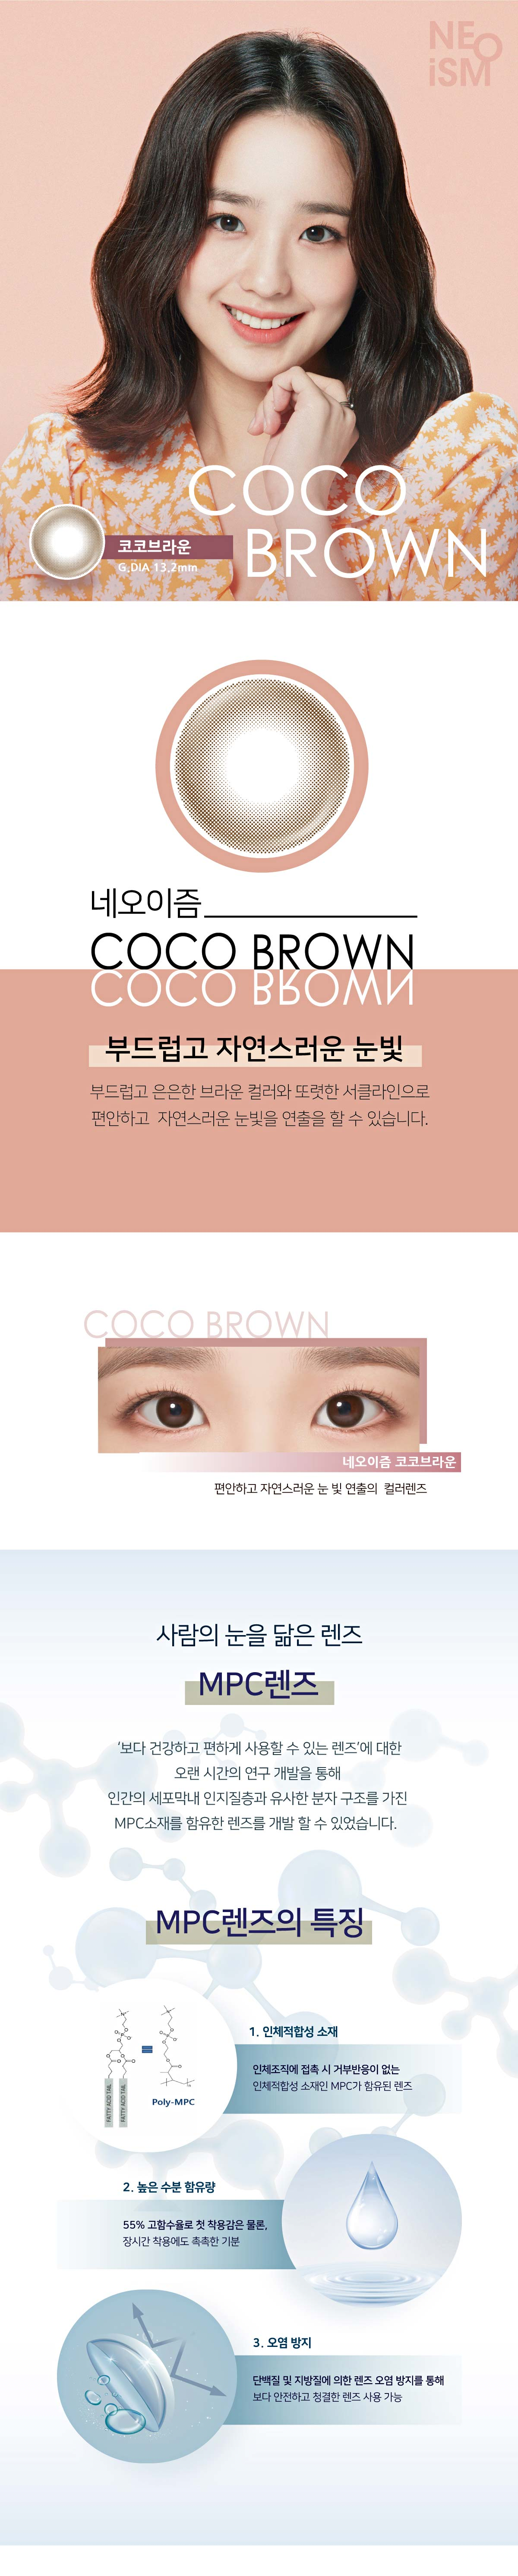 neoism-coco-brown-colored-contact-lenses-circle-1.jpg